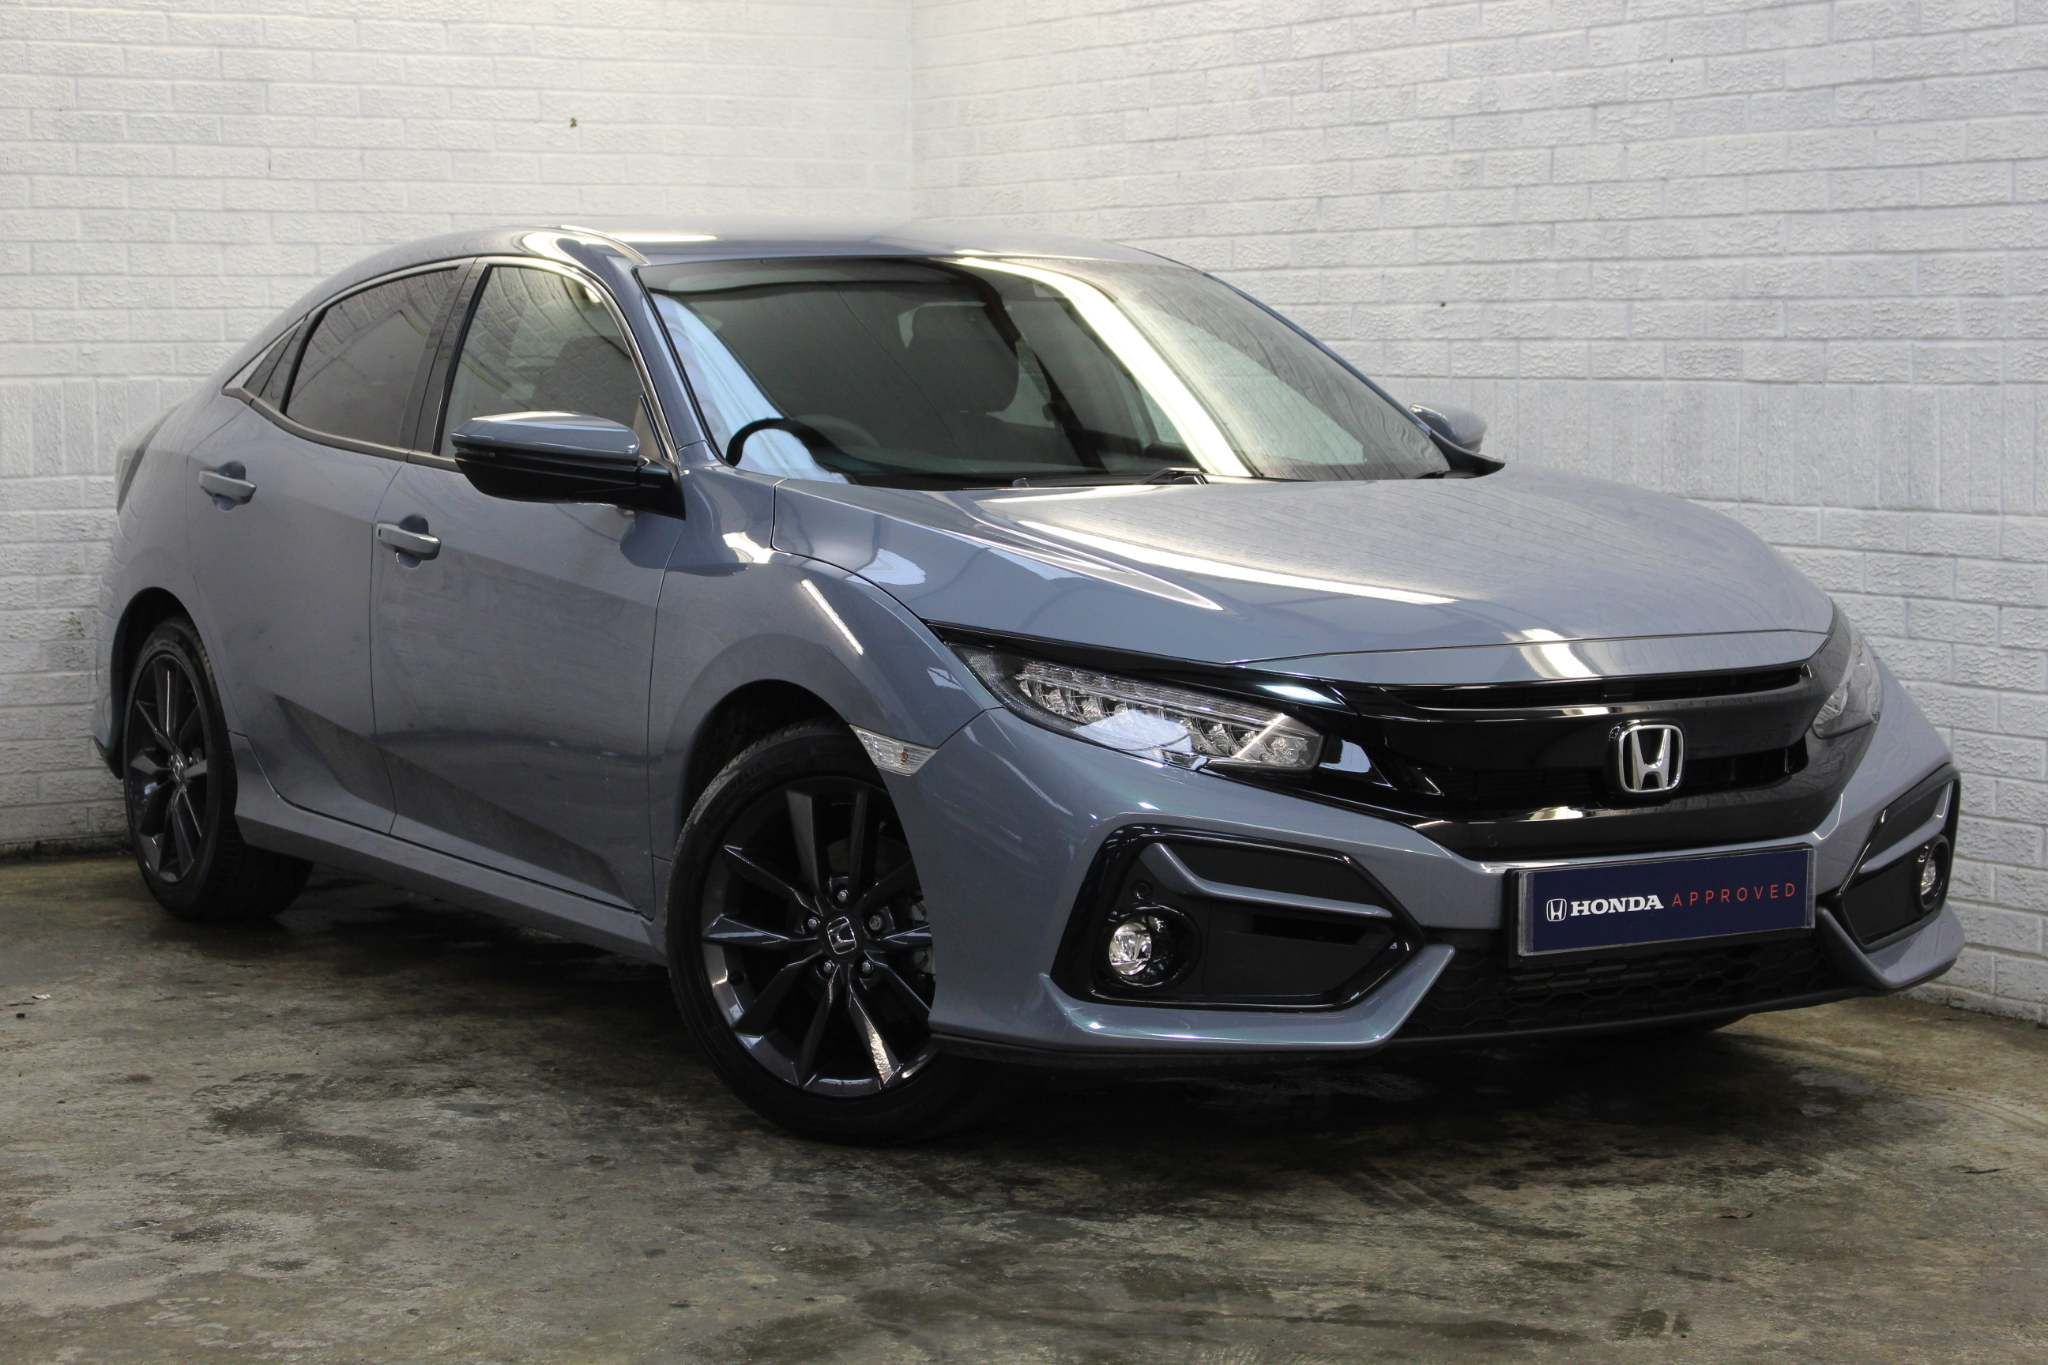 Honda Civic 1.0 VTEC Turbo SR (s/s) 5dr